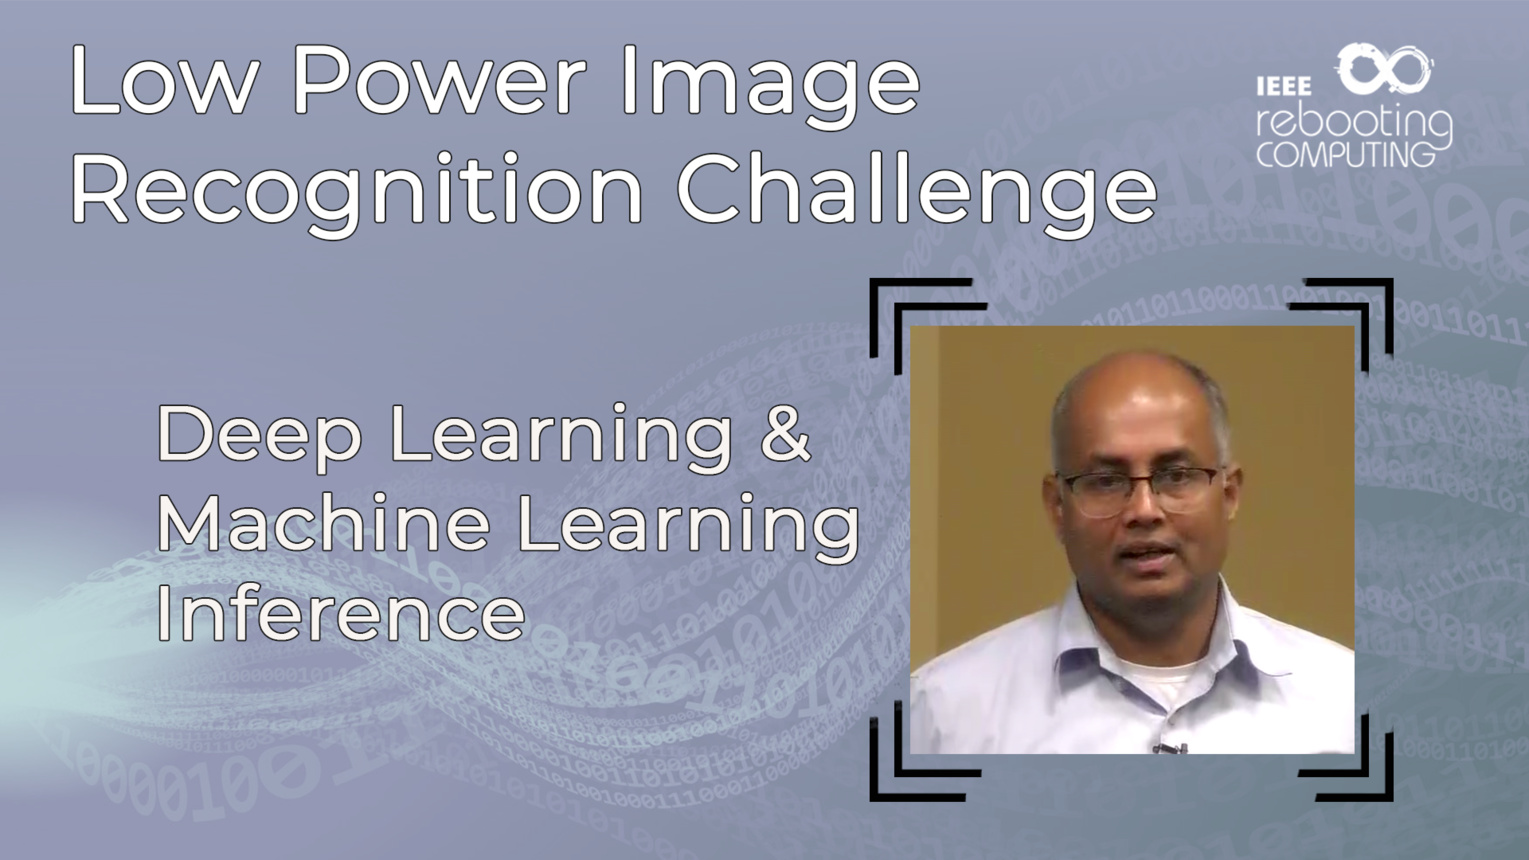 Deep Learning & Machine Learning Inference - Ashish Sirasao - LPIRC 2019